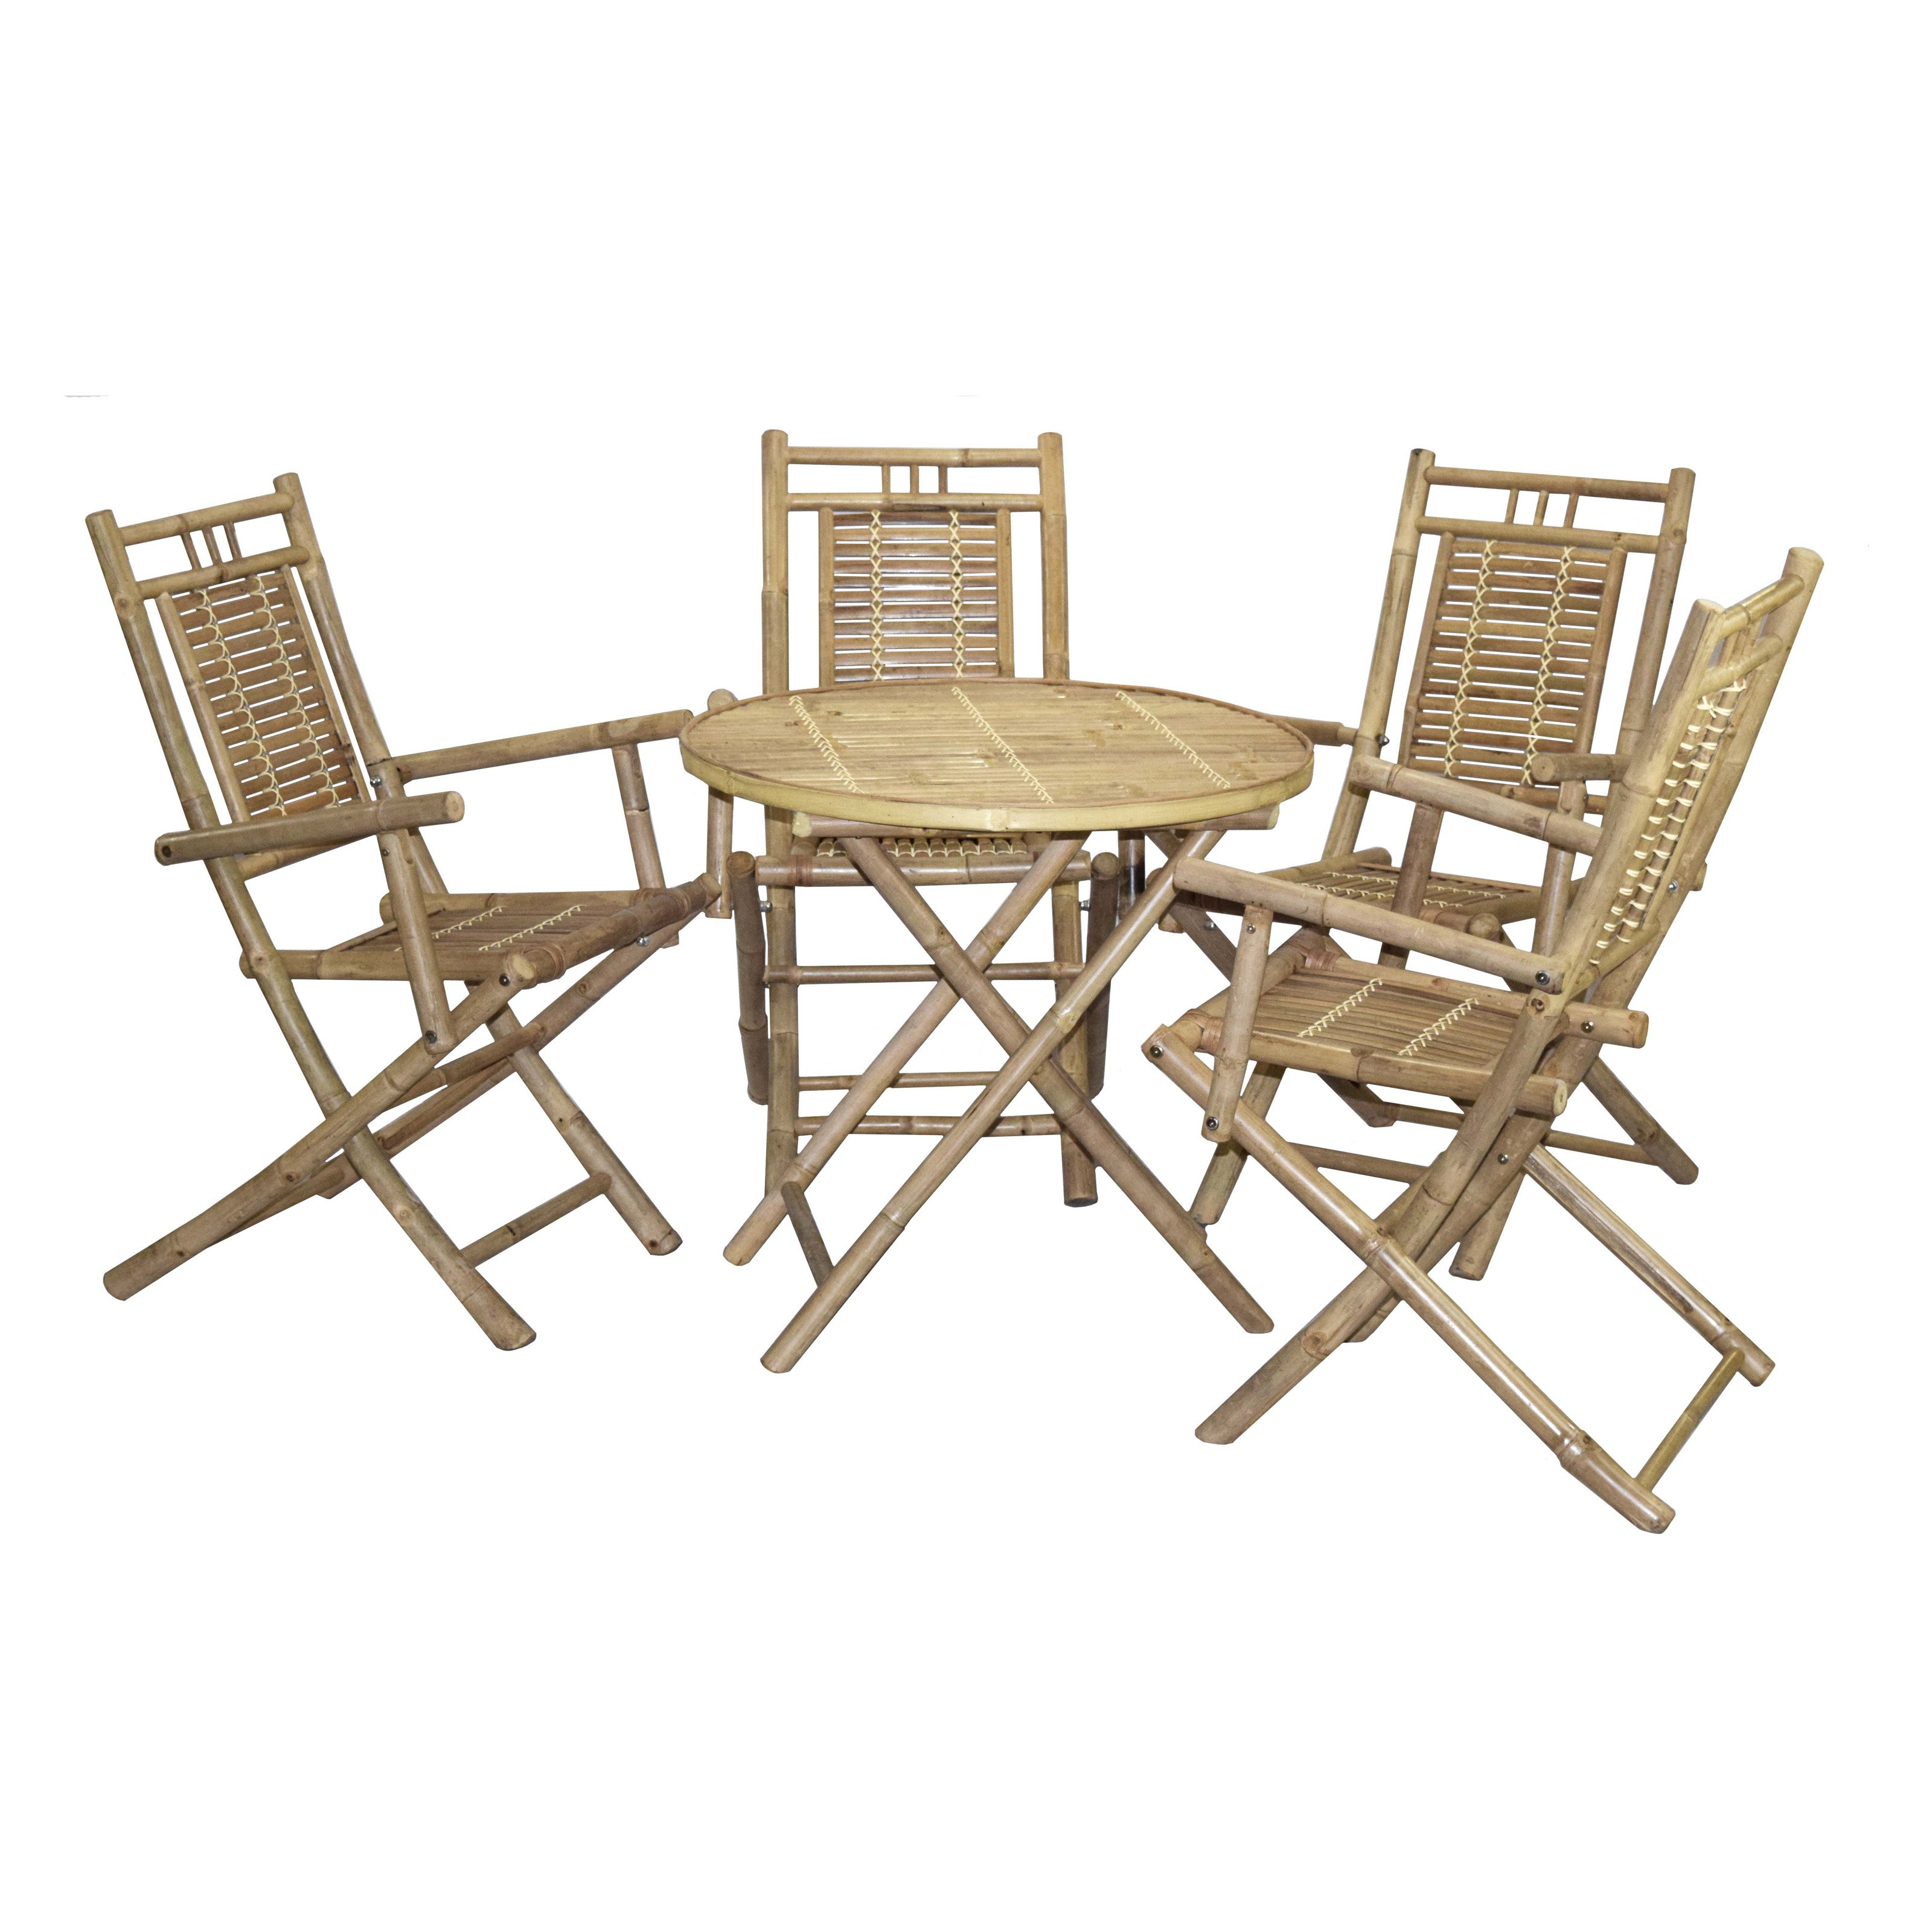 Bamboo54 Wood 5 Piece Round Patio Dining Set with Arm Chairs